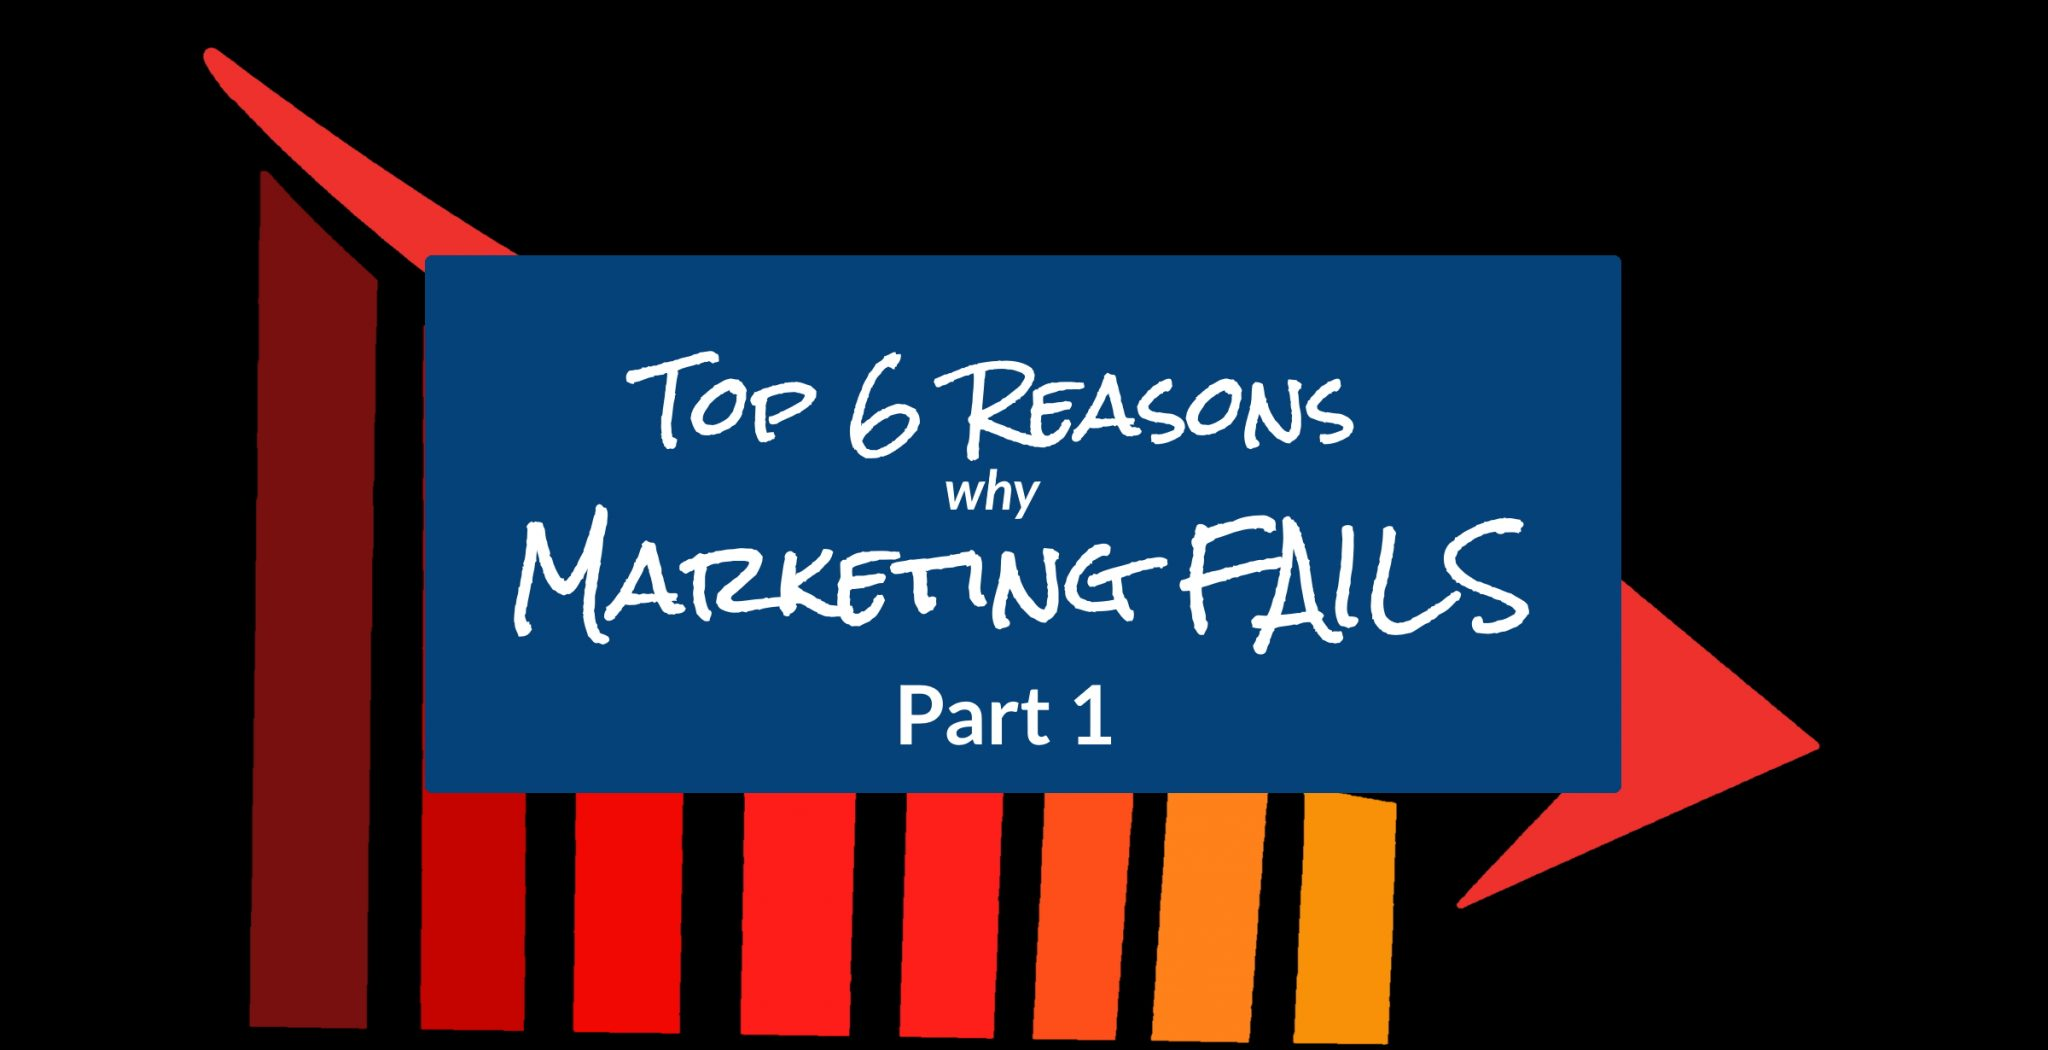 Top 6 Reasons Why Marketing Fails - Part 1 5